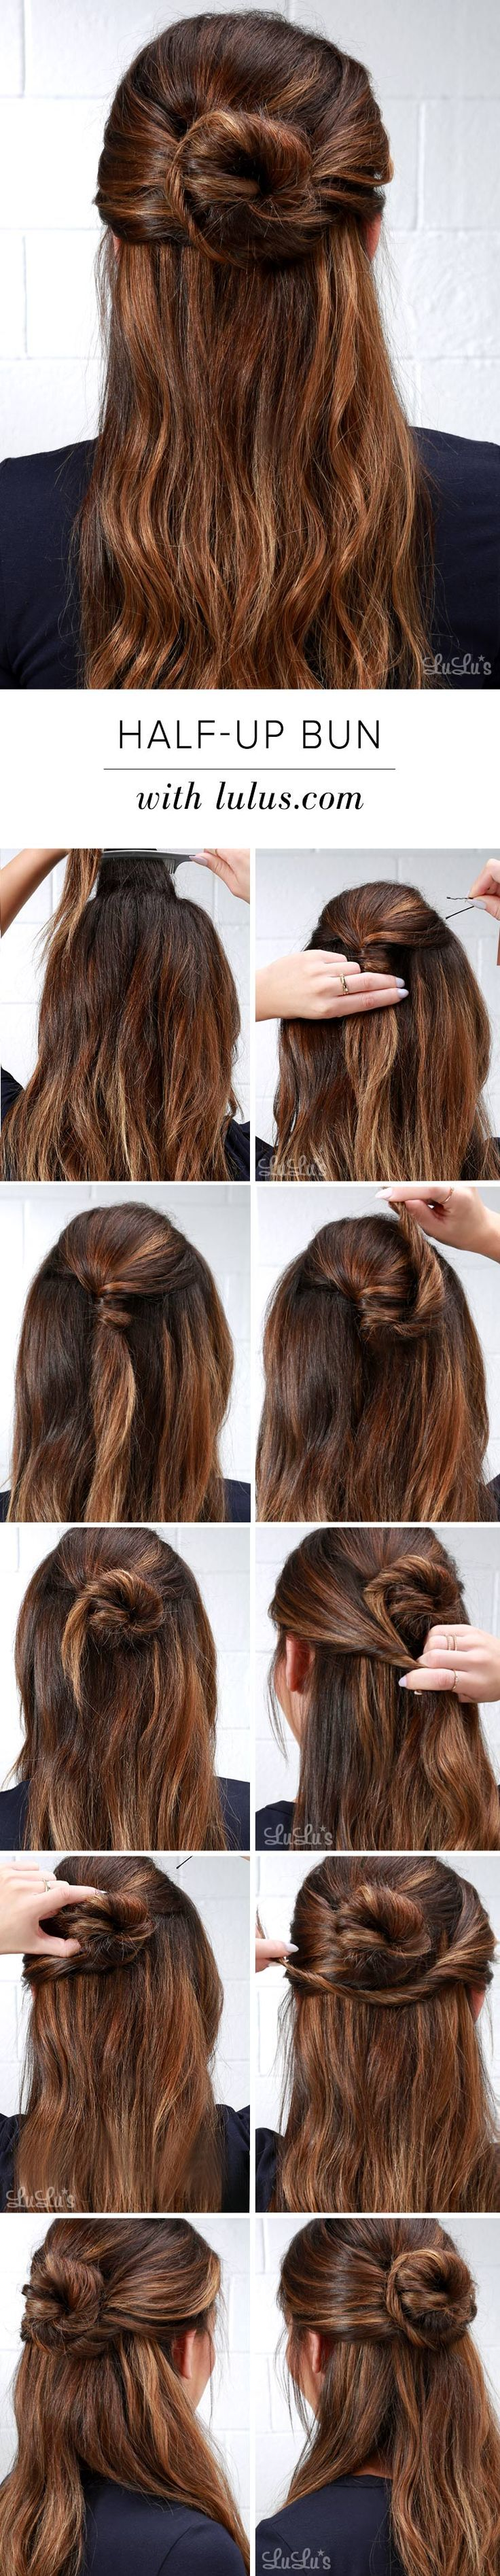 45 best Hair Style images on Pinterest